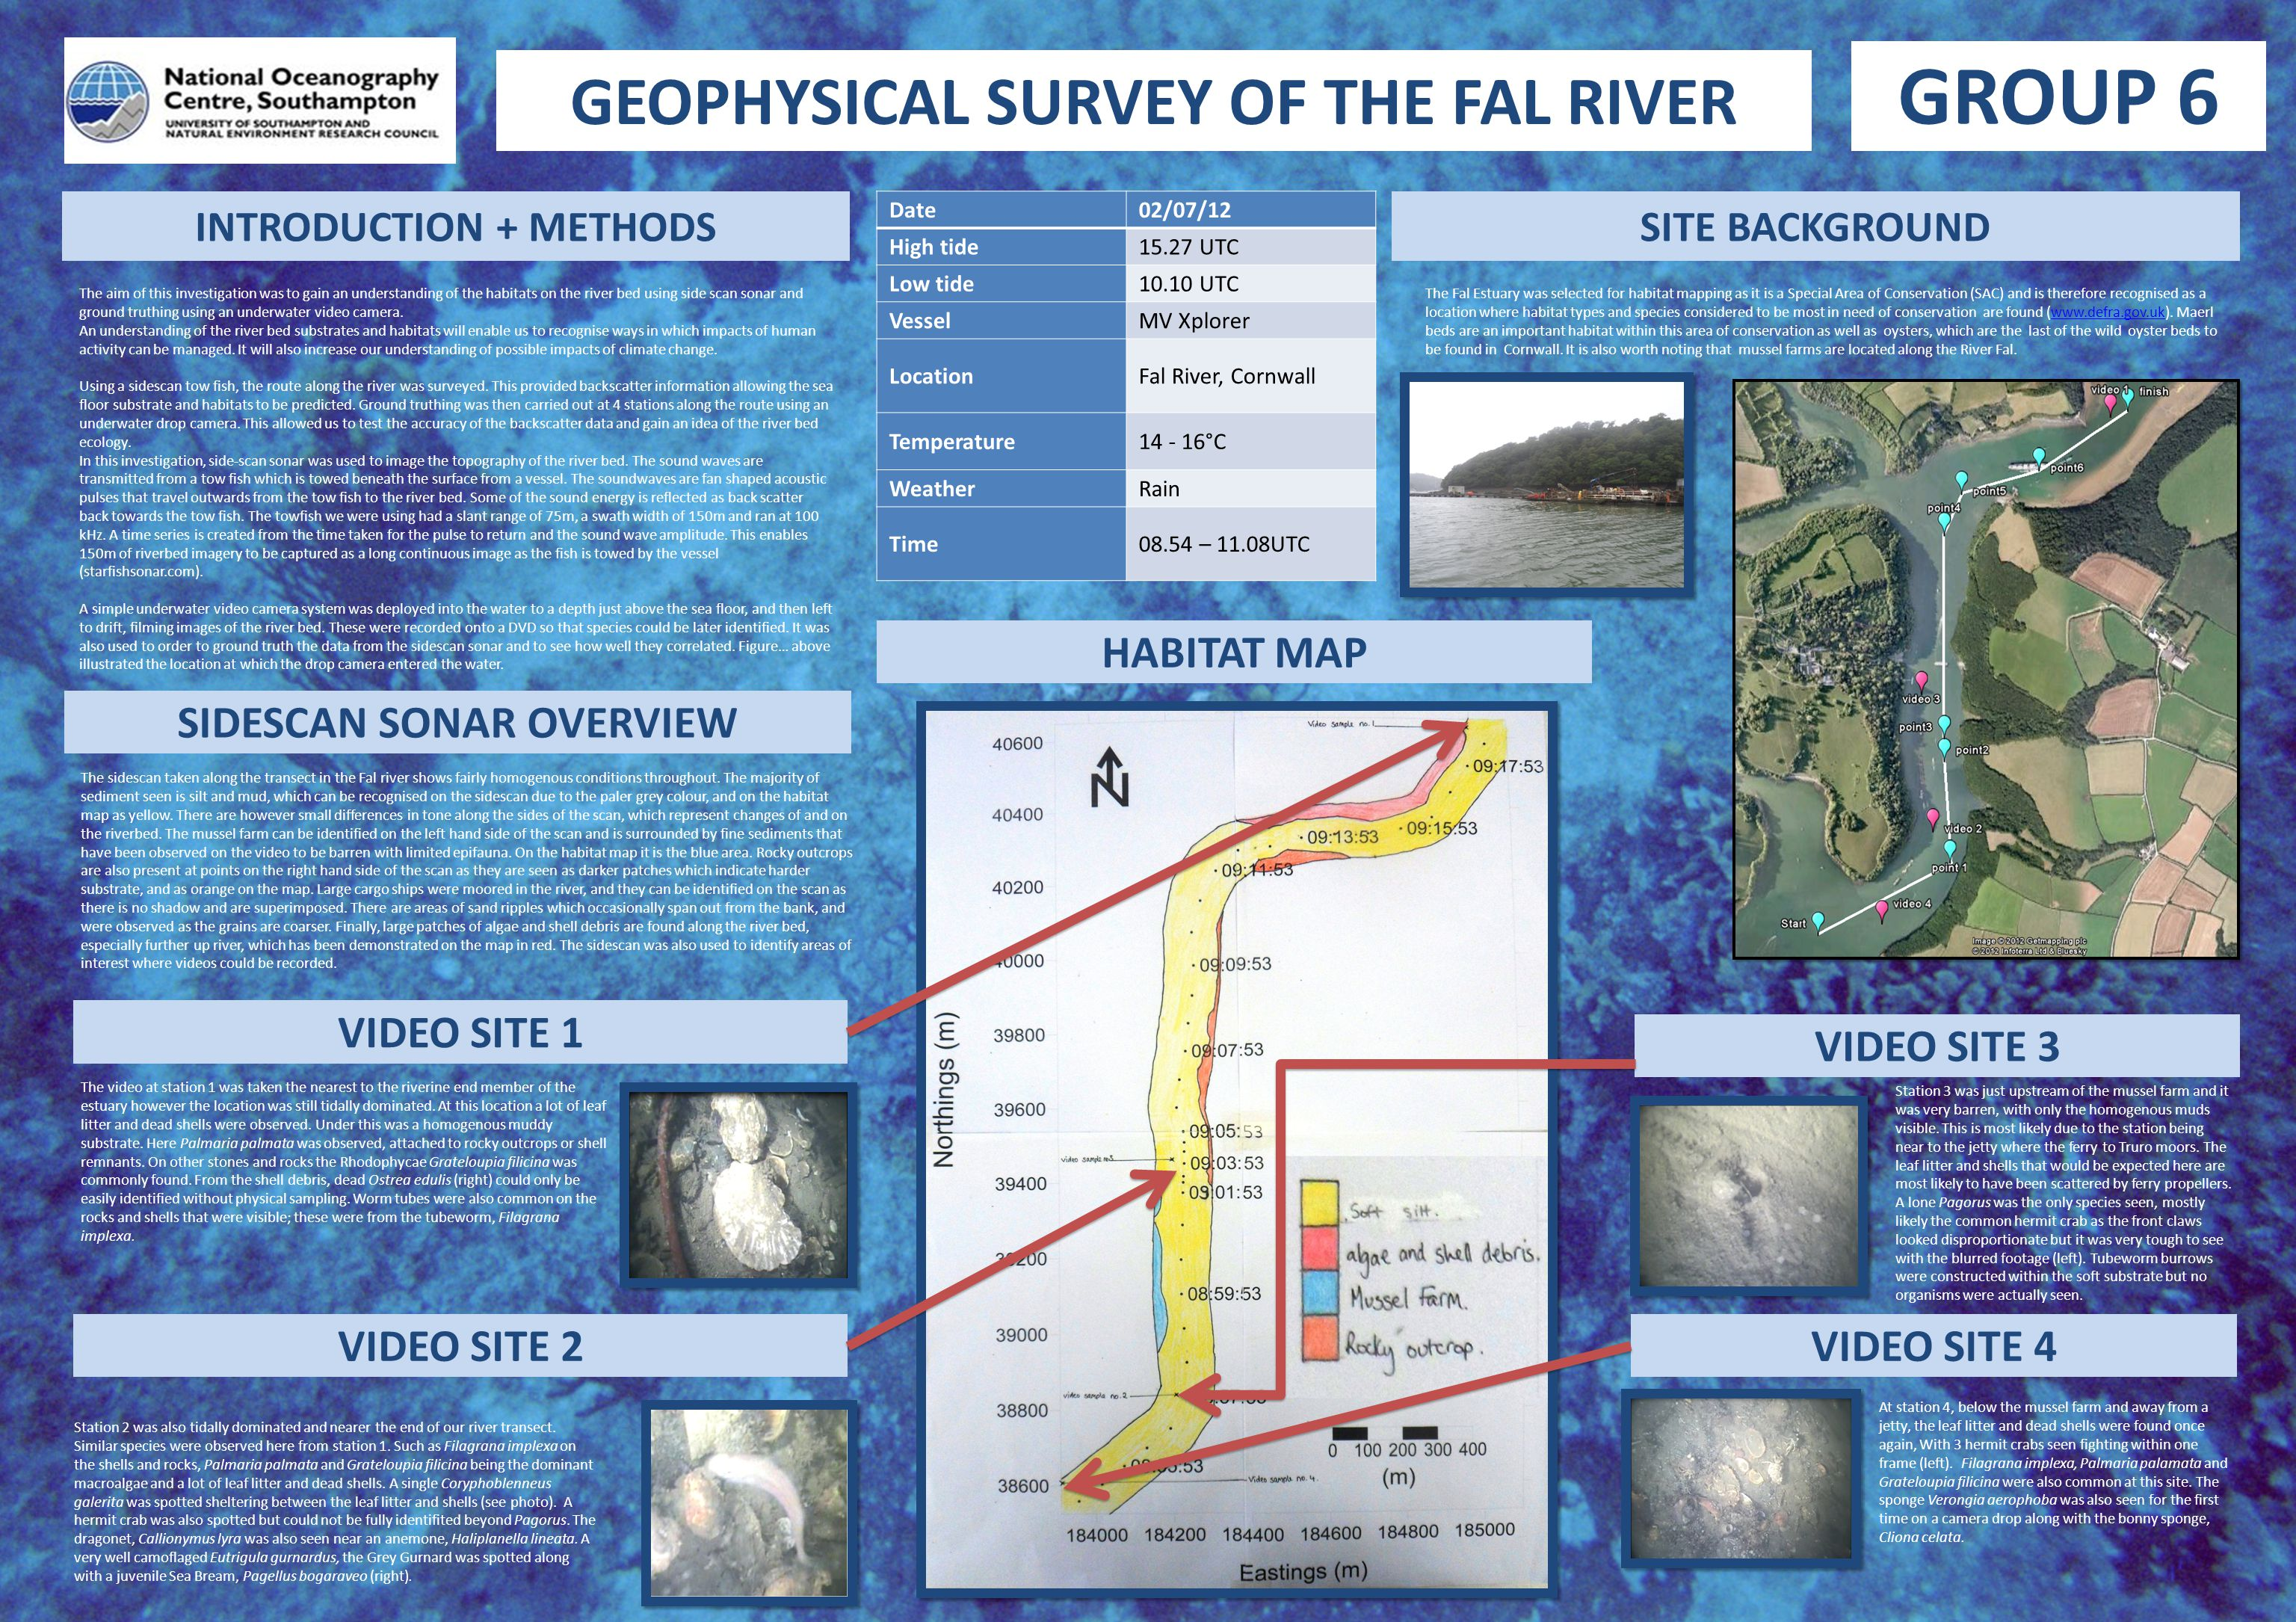 GEOPHYSICAL SURVEY OF THE FAL RIVER Date02/07/12 High tide15.27 UTC Low tide10.10 UTC VesselMV Xplorer LocationFal River, Cornwall Temperature14 - 16°C WeatherRain Time08.54 – 11.08UTC INTRODUCTION + METHODS The aim of this investigation was to gain an understanding of the habitats on the river bed using side scan sonar and ground truthing using an underwater video camera.